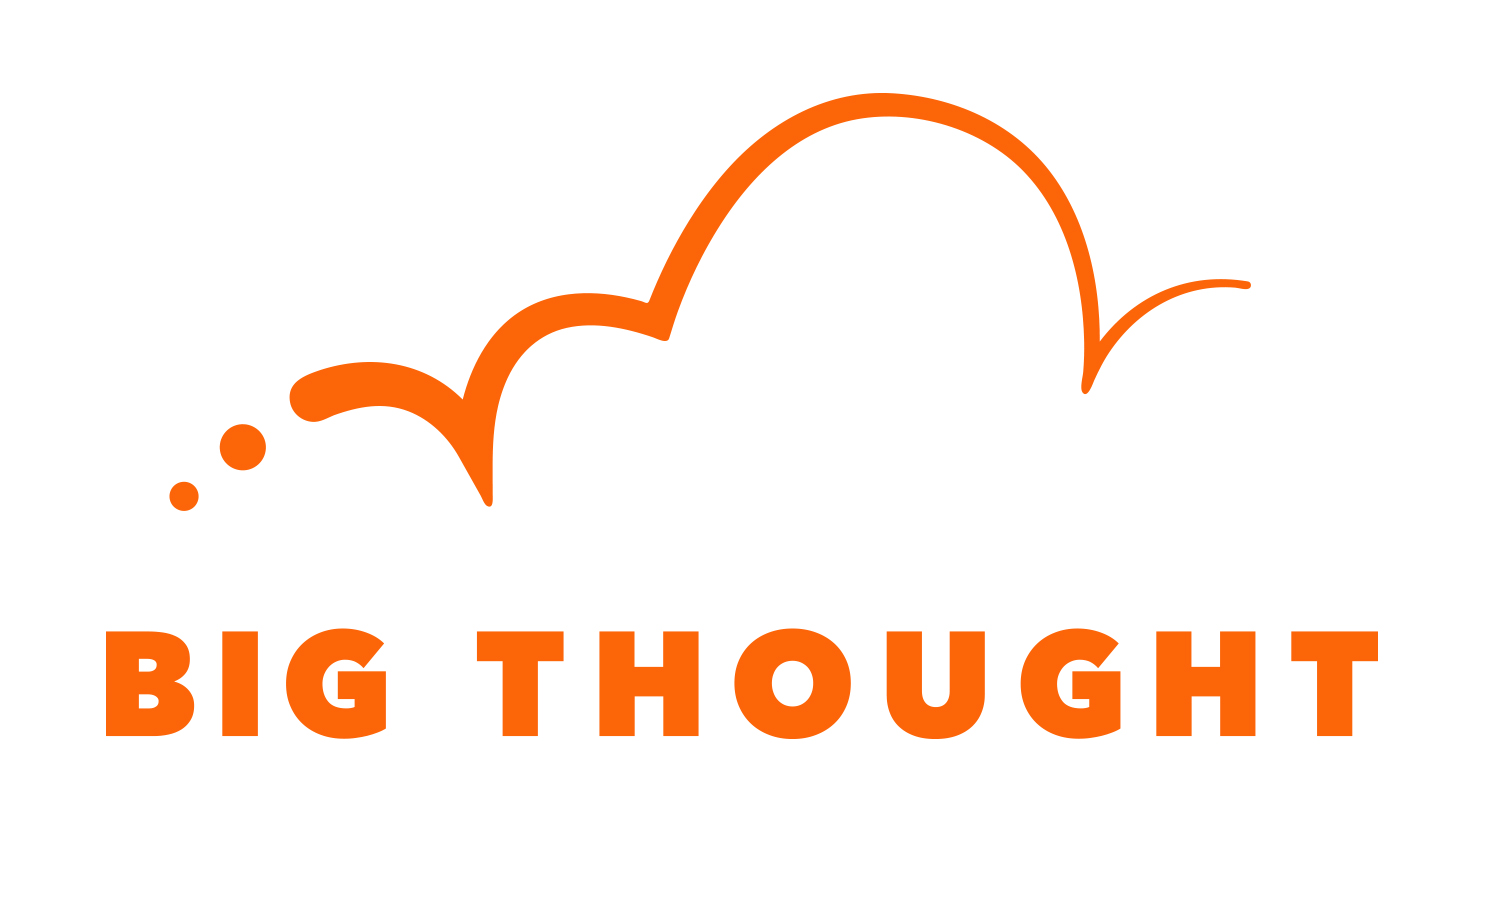 Big Thought logo